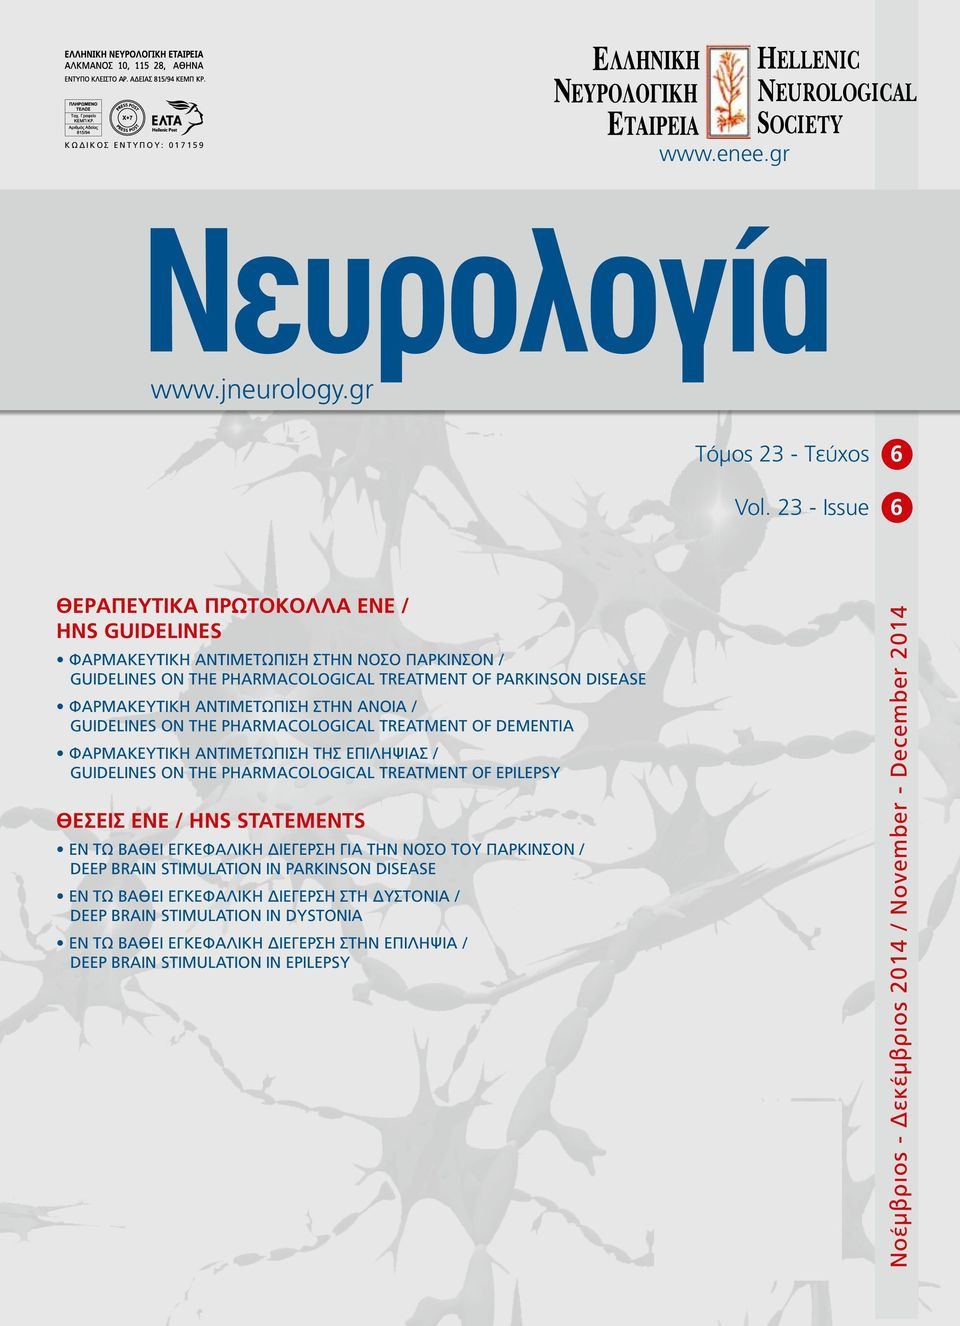 ΣΤΗΝ ΑΝΟΙΑ / GUIDELINES ON THE PHARMACOLOGICAL TREATMENT OF DEMENTIA ΦΑΡΜΑΚΕΥΤΙΚΗ ΑΝΤΙΜΕΤΩΠΙΣΗ ΤΗΣ ΕΠΙΛΗΨΙΑΣ / GUIDELINES ON THE PHARMACOLOGICAL TREATMENT OF EPILEPSY ΘΕΣΕΙΣ ΕΝΕ / HNS STATEMENTS Εν